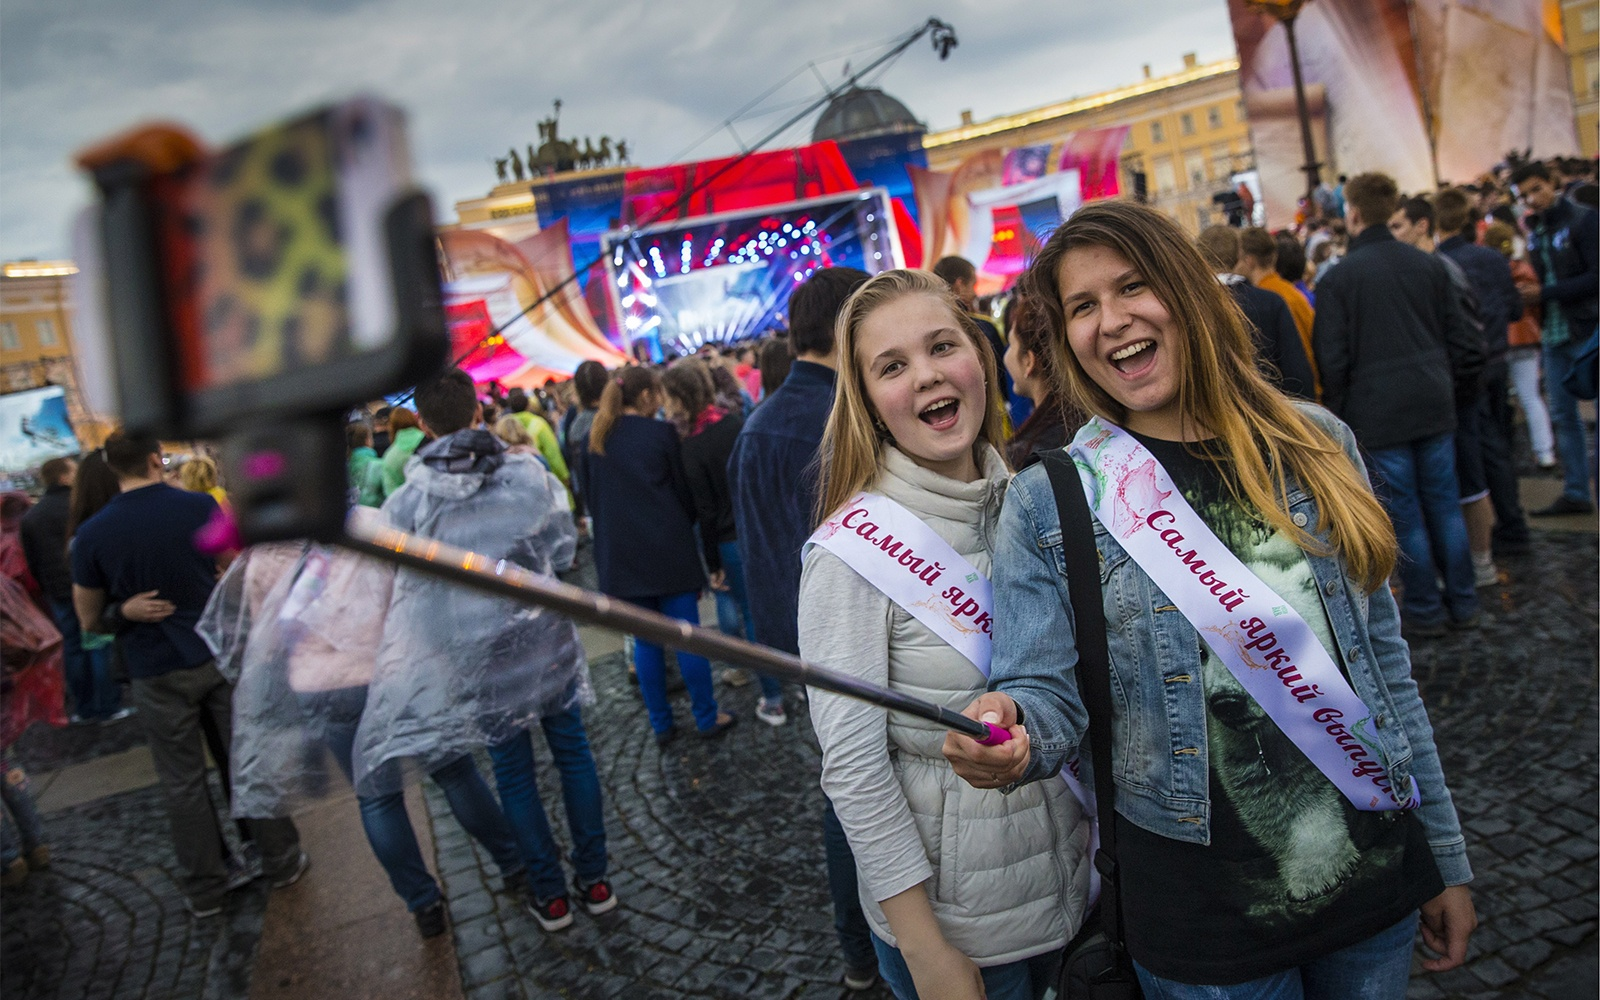 SELFIESTICK0715-russian-graphic.jpg